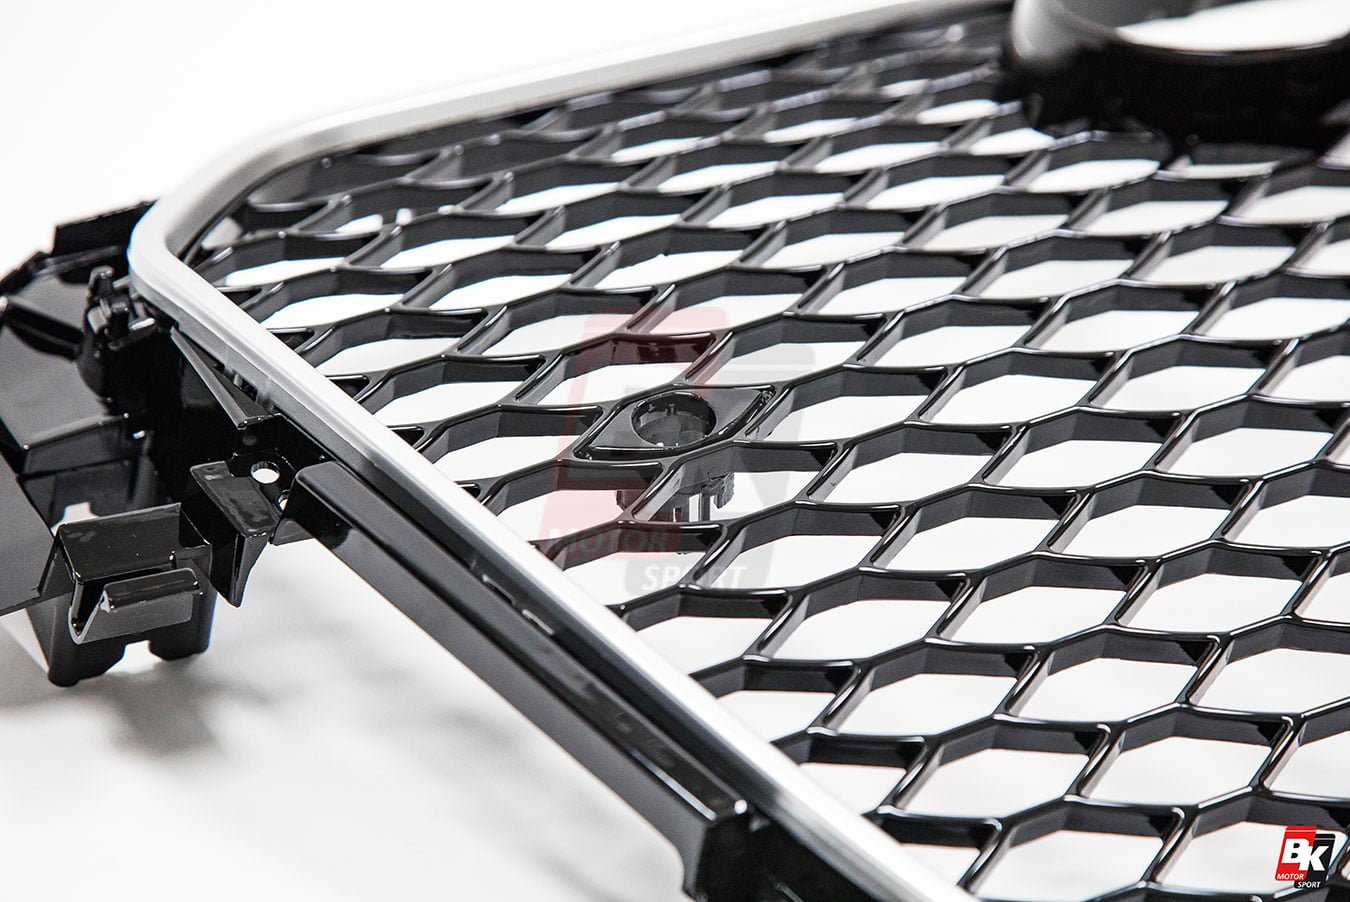 BKM Front Grille with Silver Frame (RS4 Style), fits Audi A4/S4 B8.5